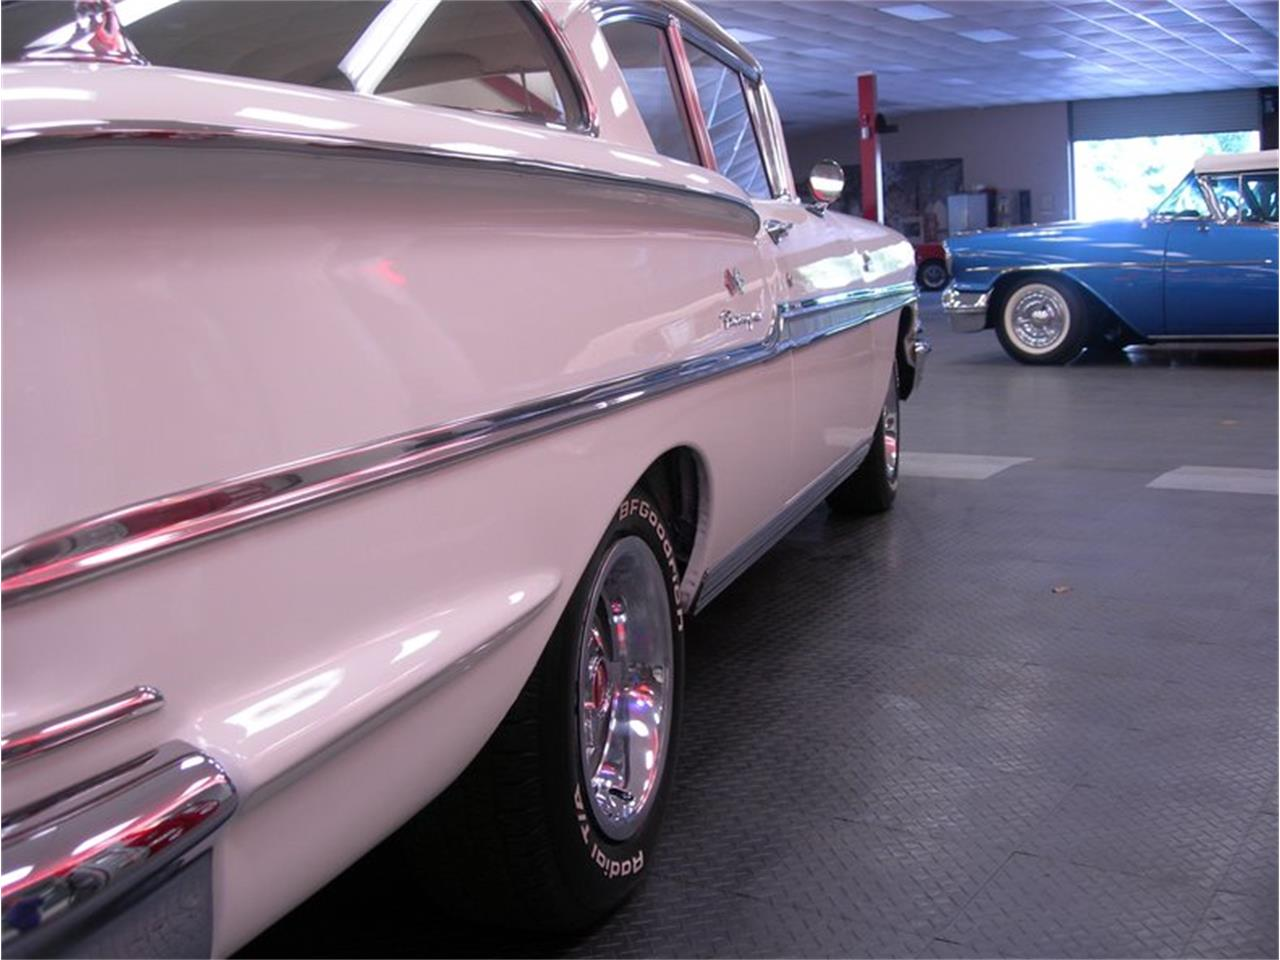 1958 Chevrolet Biscayne for sale in Dothan, AL – photo 35